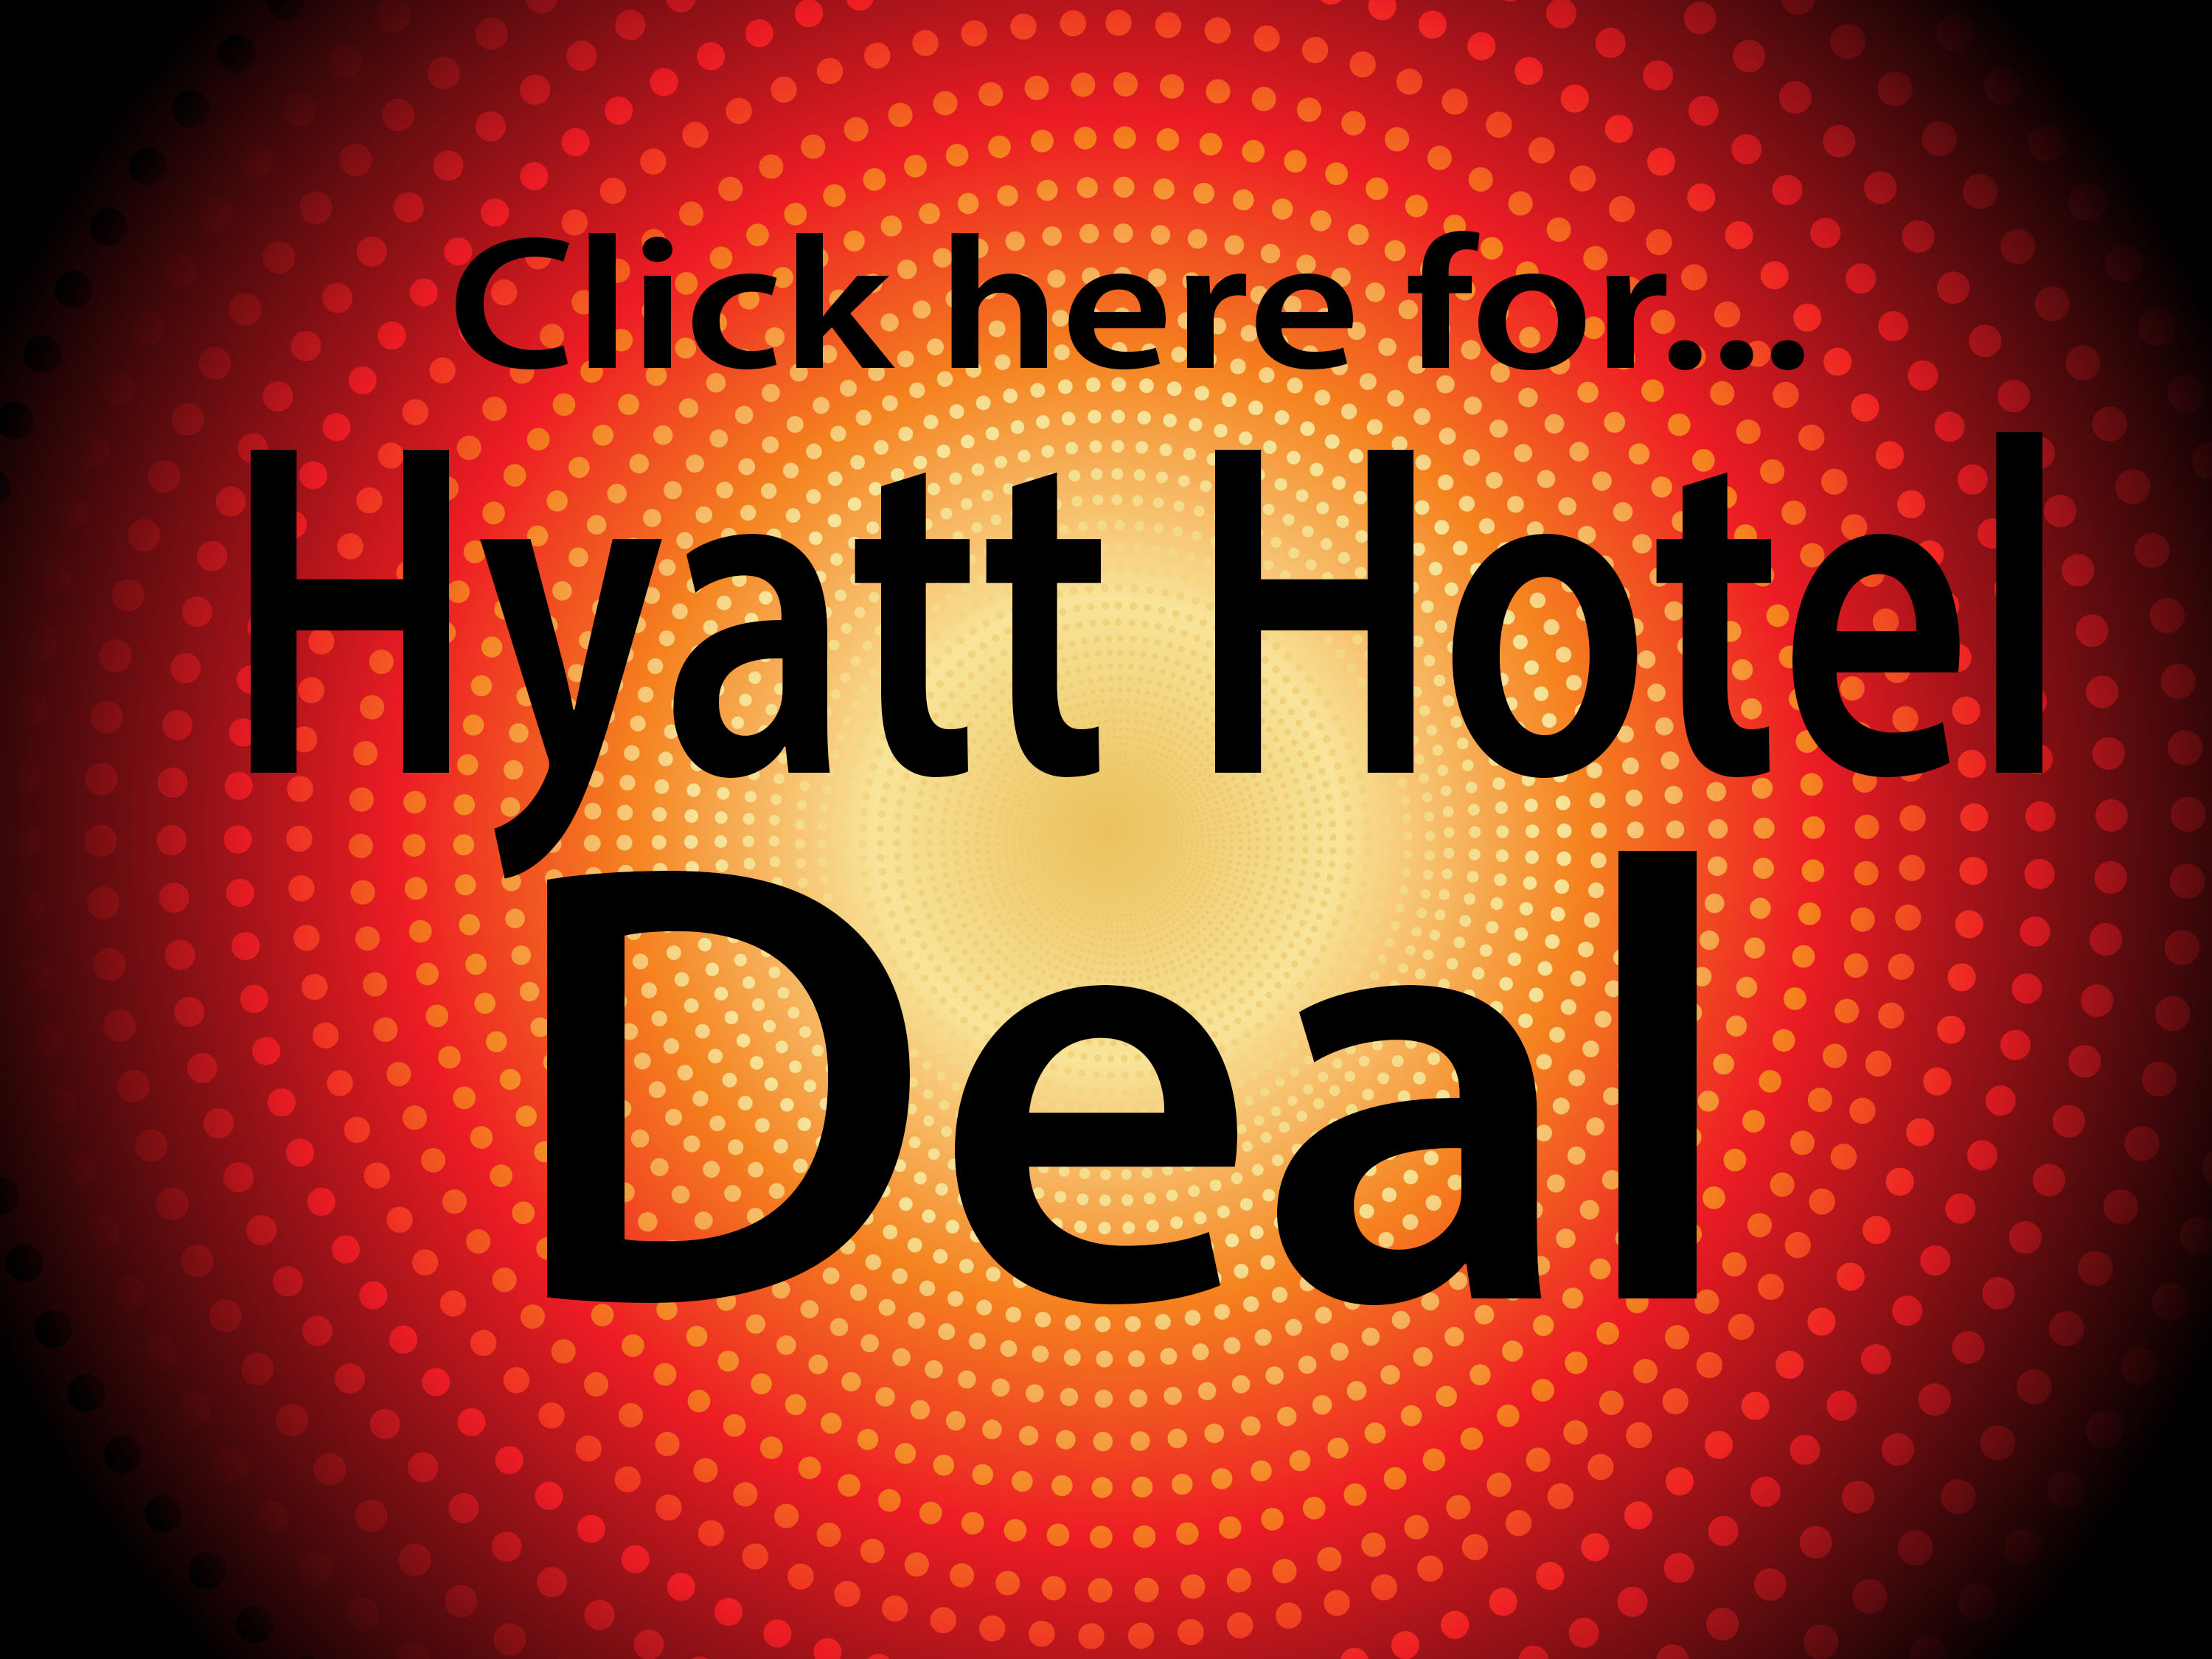 New Year's Eve Party Hyatt Hotel Room Deal